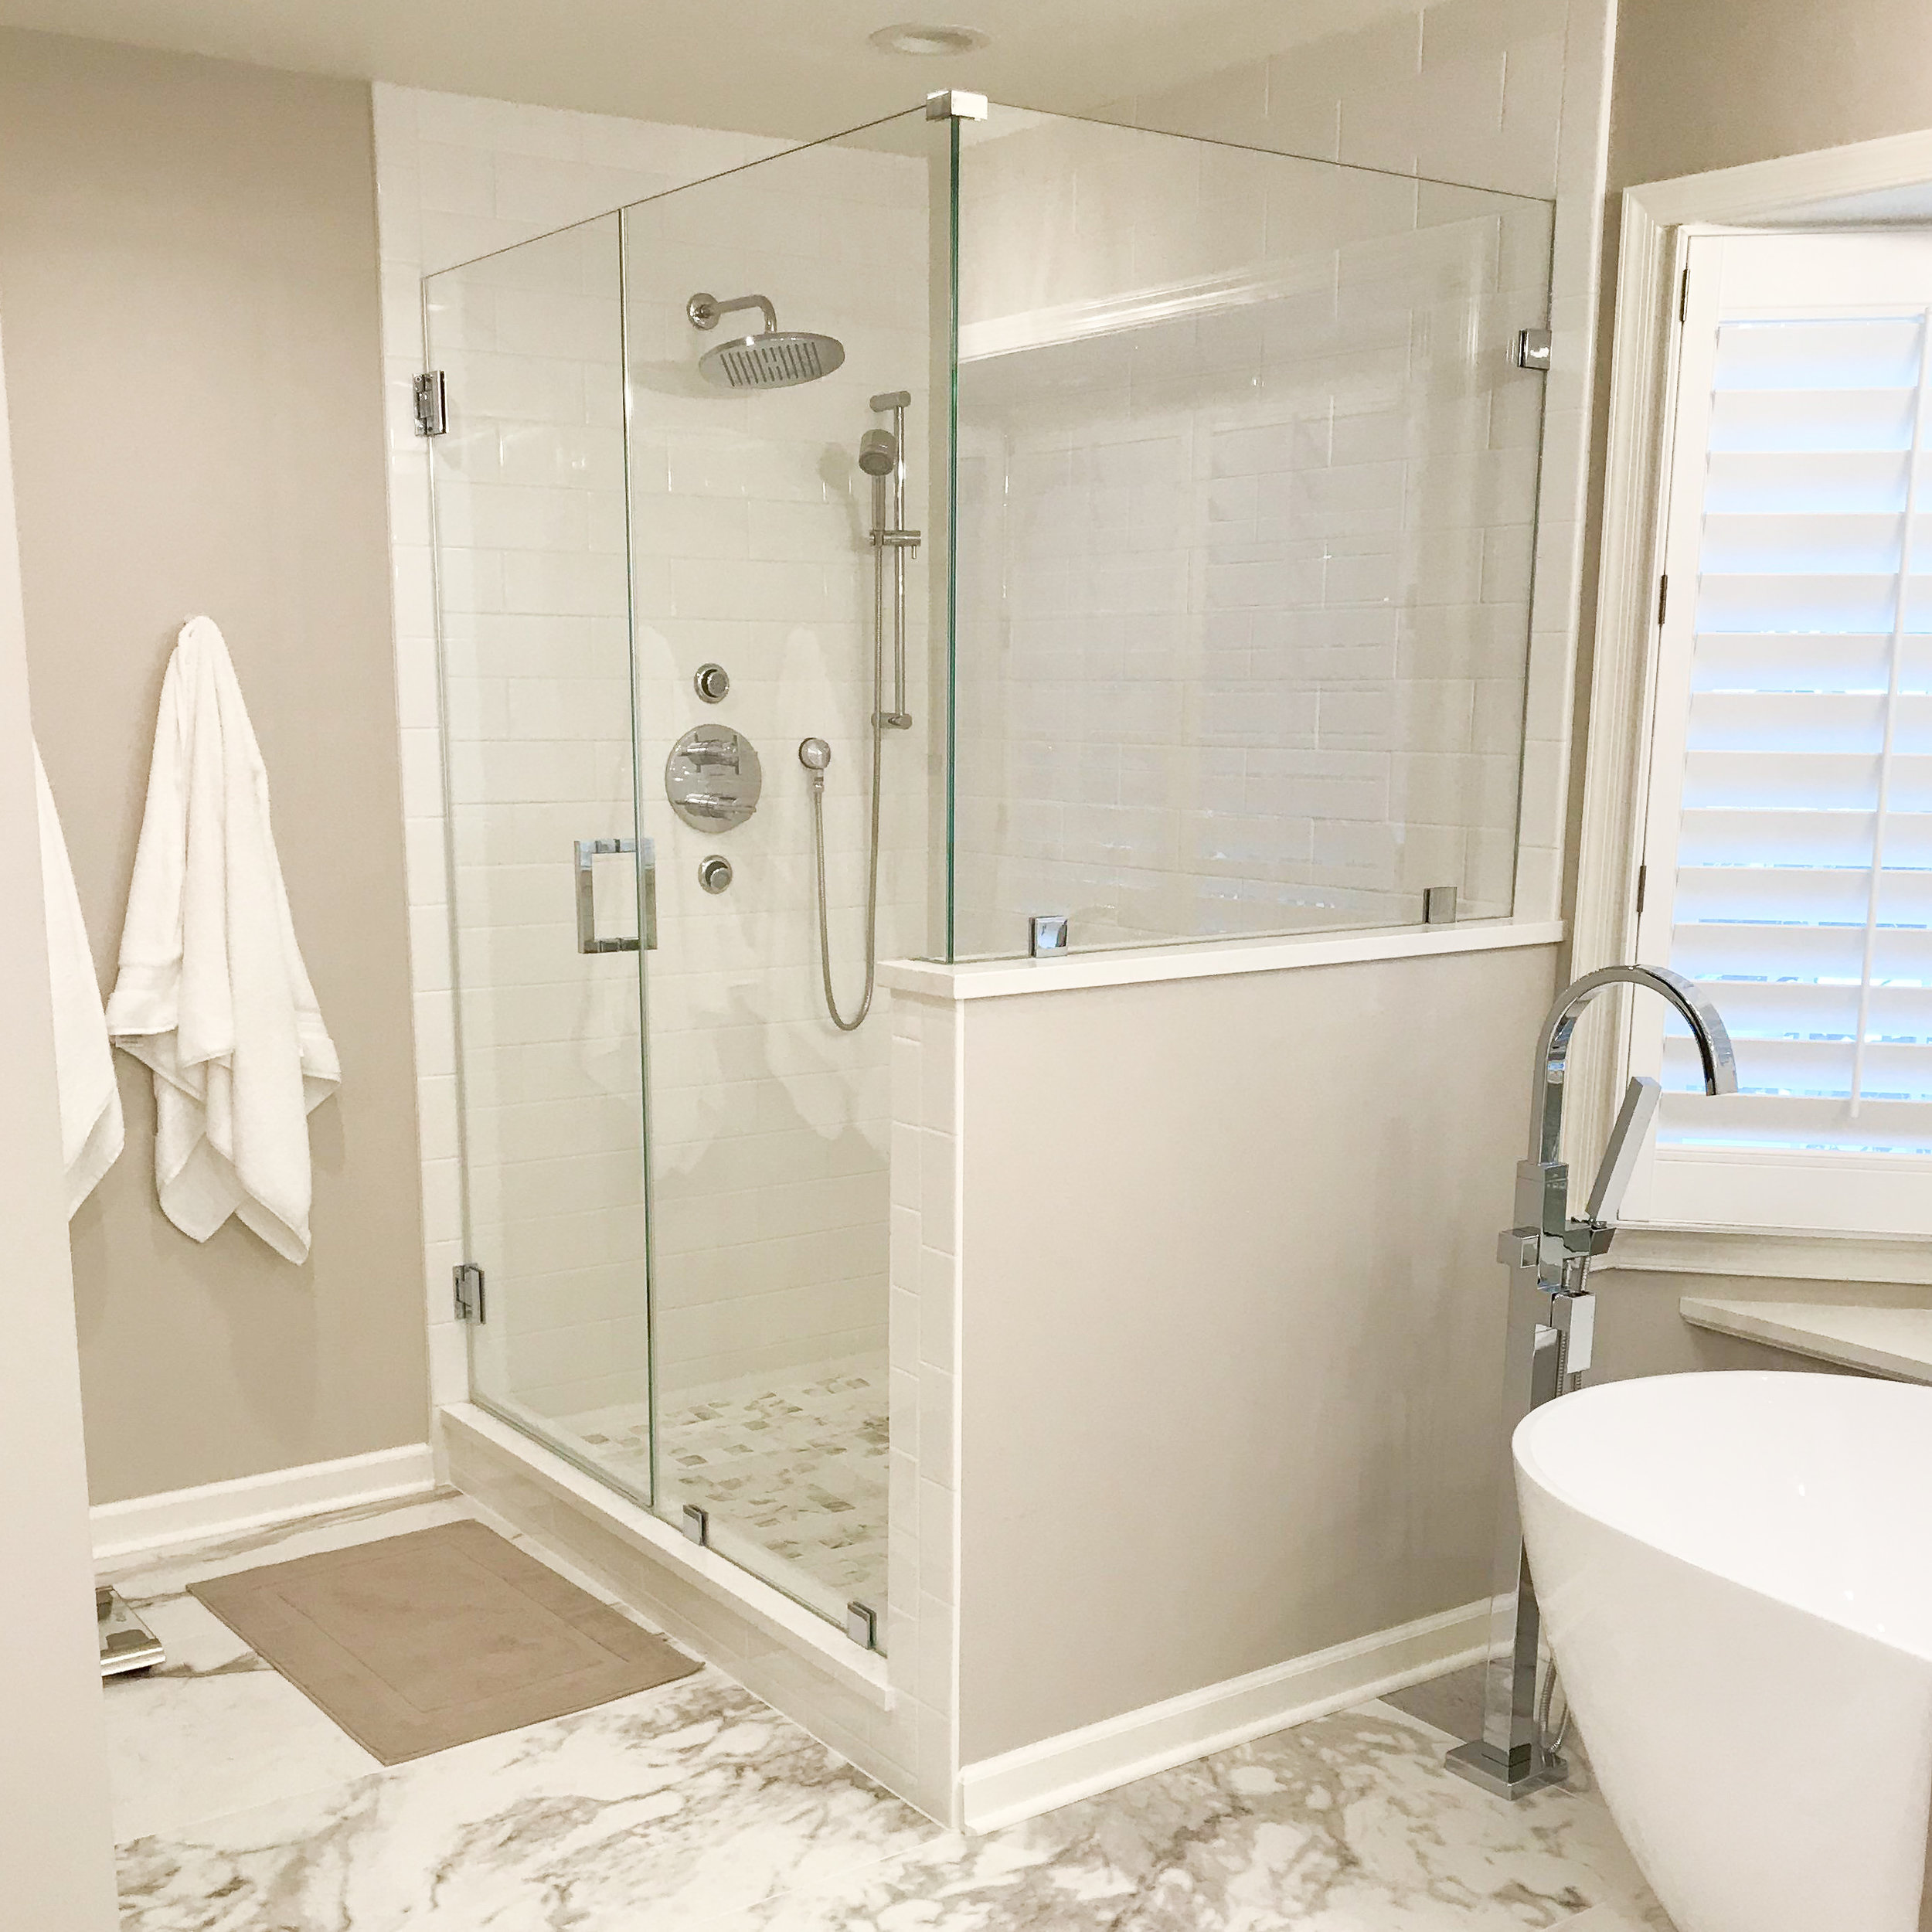 Sleek transitional bath uses a mix of warm and cool shades with a bit of shine from the crystal lighting and polished chrome accents to create a relaxing and serene space.